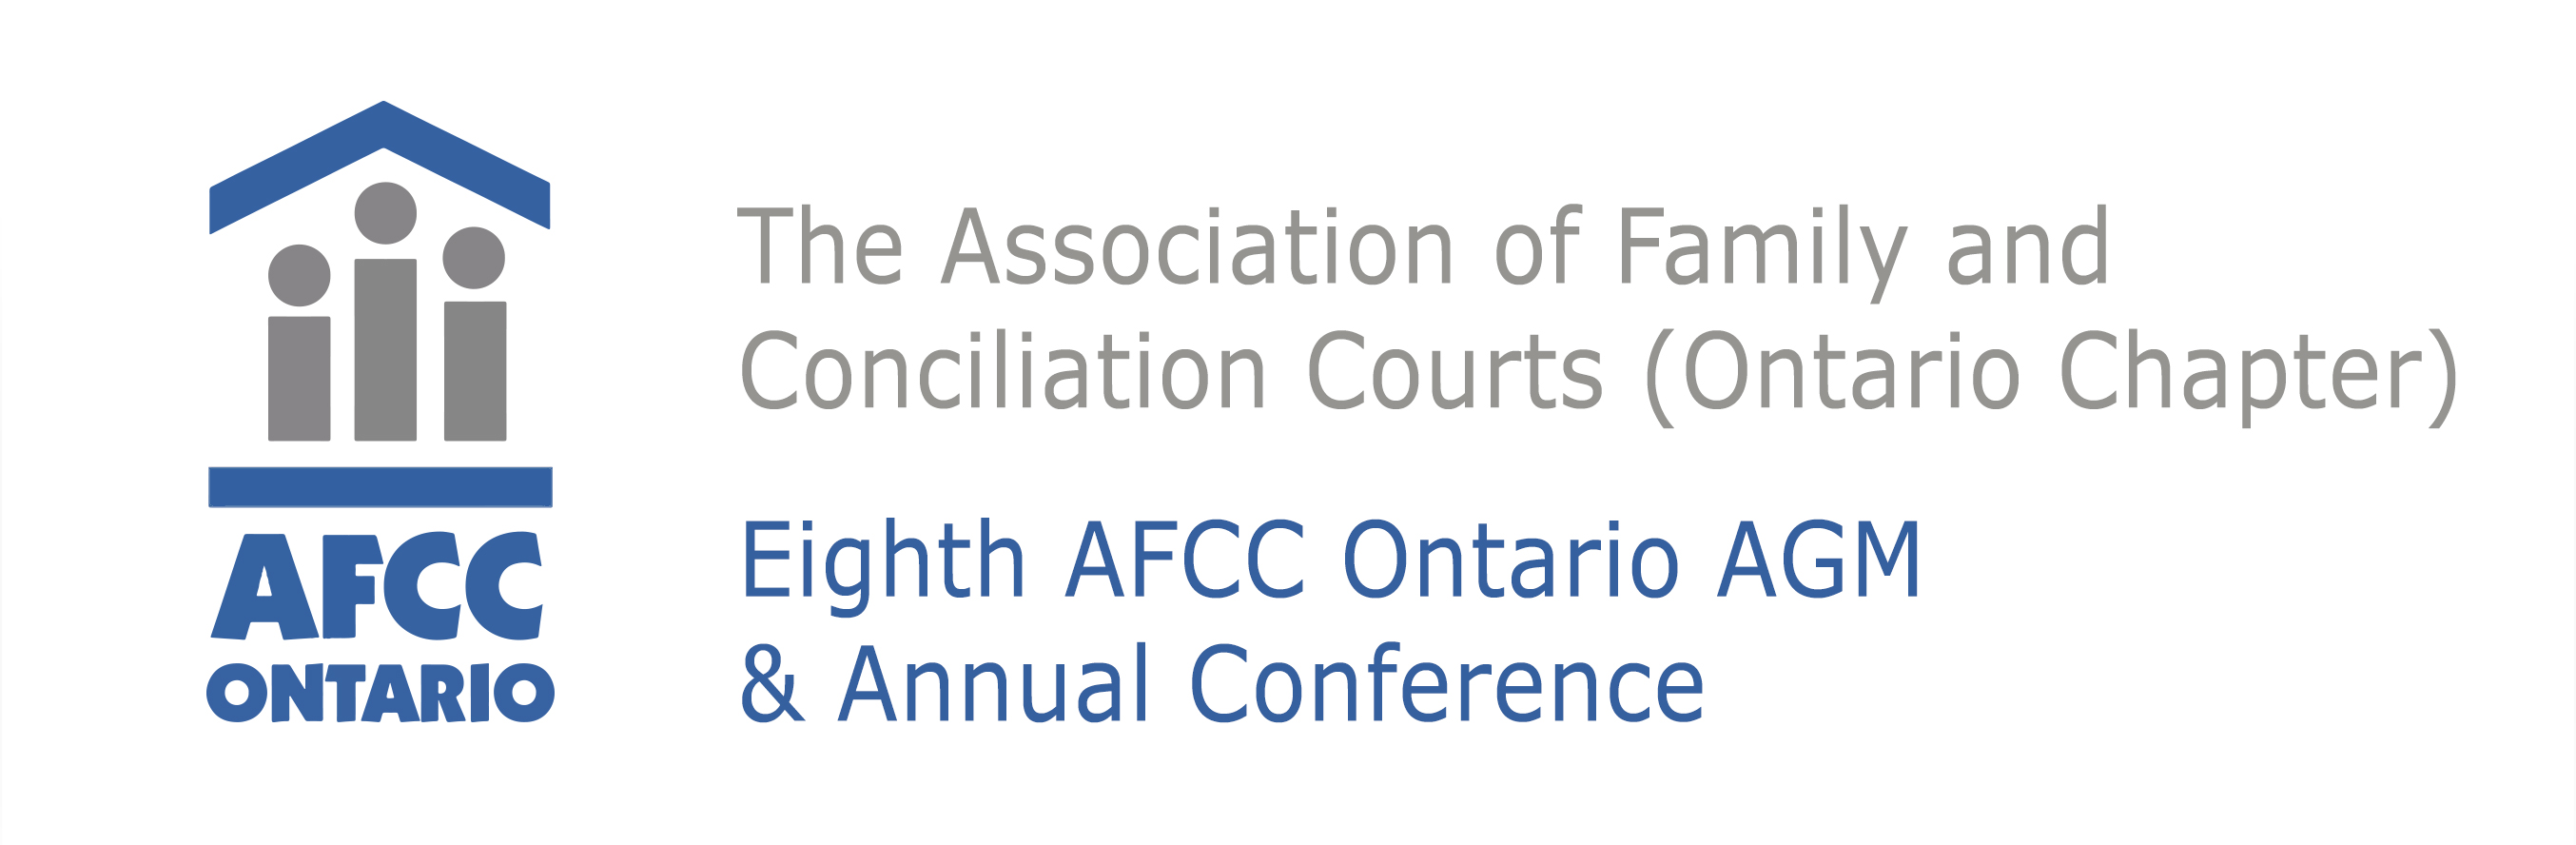 AFCC Ontario AGM & Annual Conference 2016